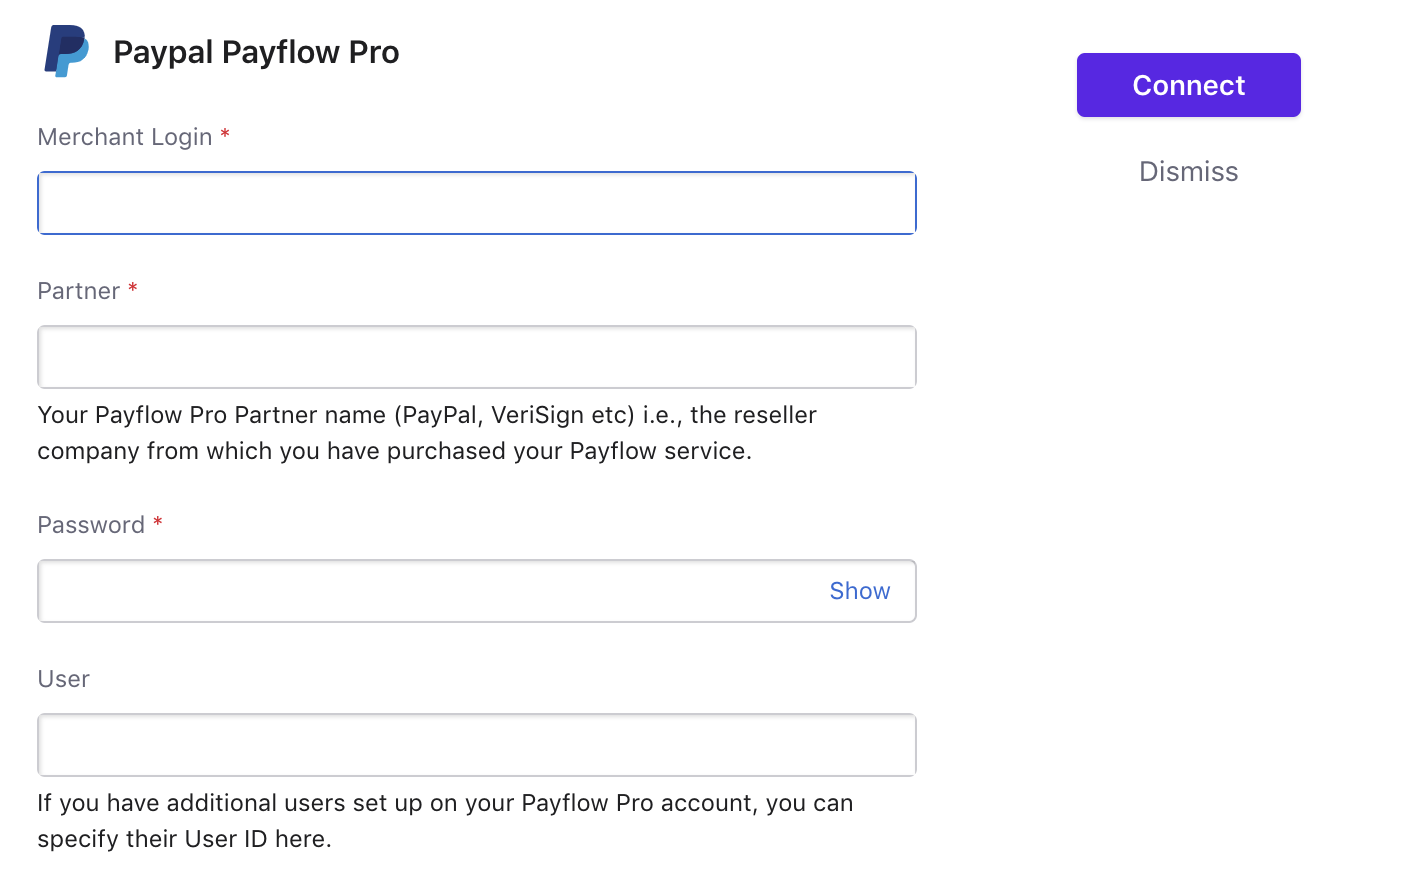 PayPal Payflow Pro: PayPal's Payment Gateway & Chargebee - Chargebee